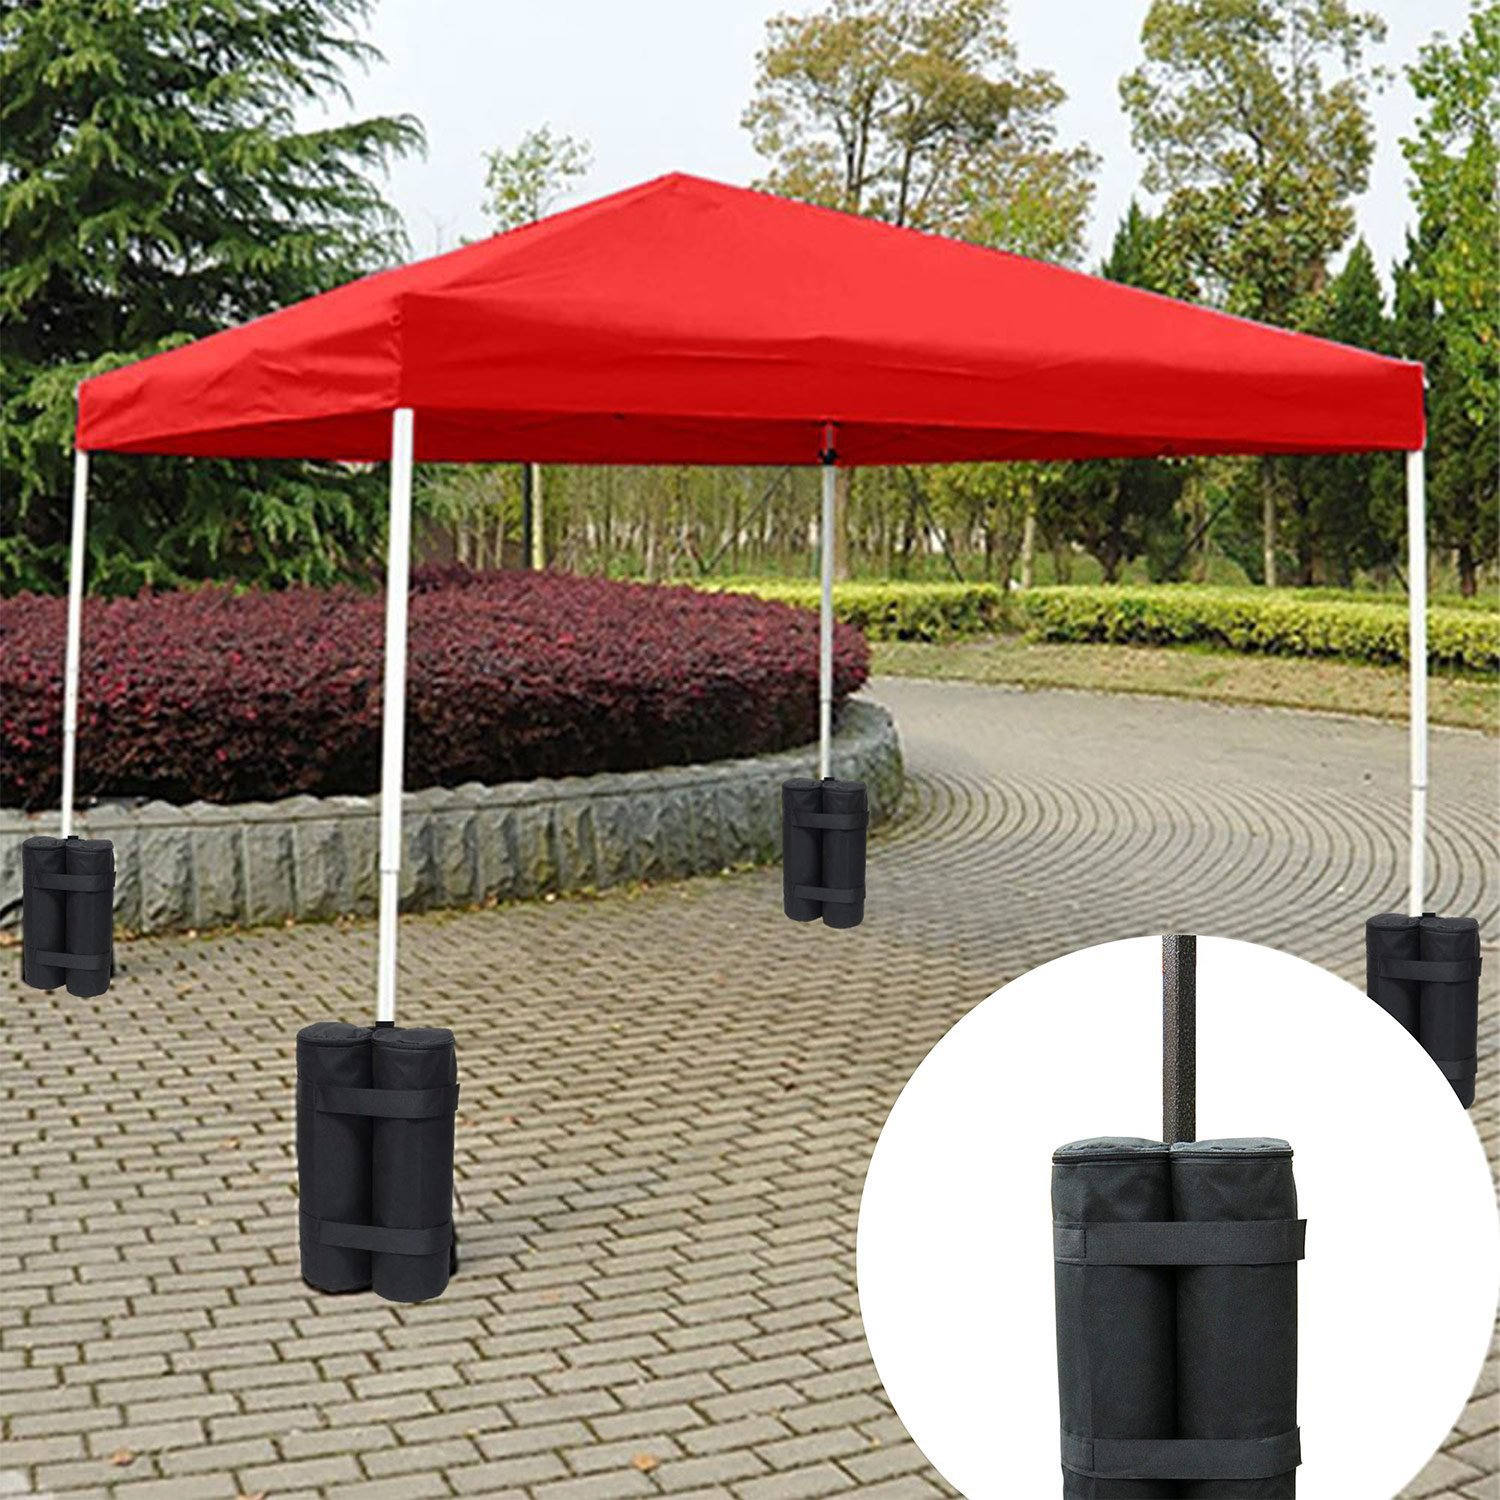 Heavy Duty Double-Stitched Weights Bag Leg For Pop Up Canopy Tent Weighted Feet Bag Sand Bag Instant Outdoor Sun Shelter